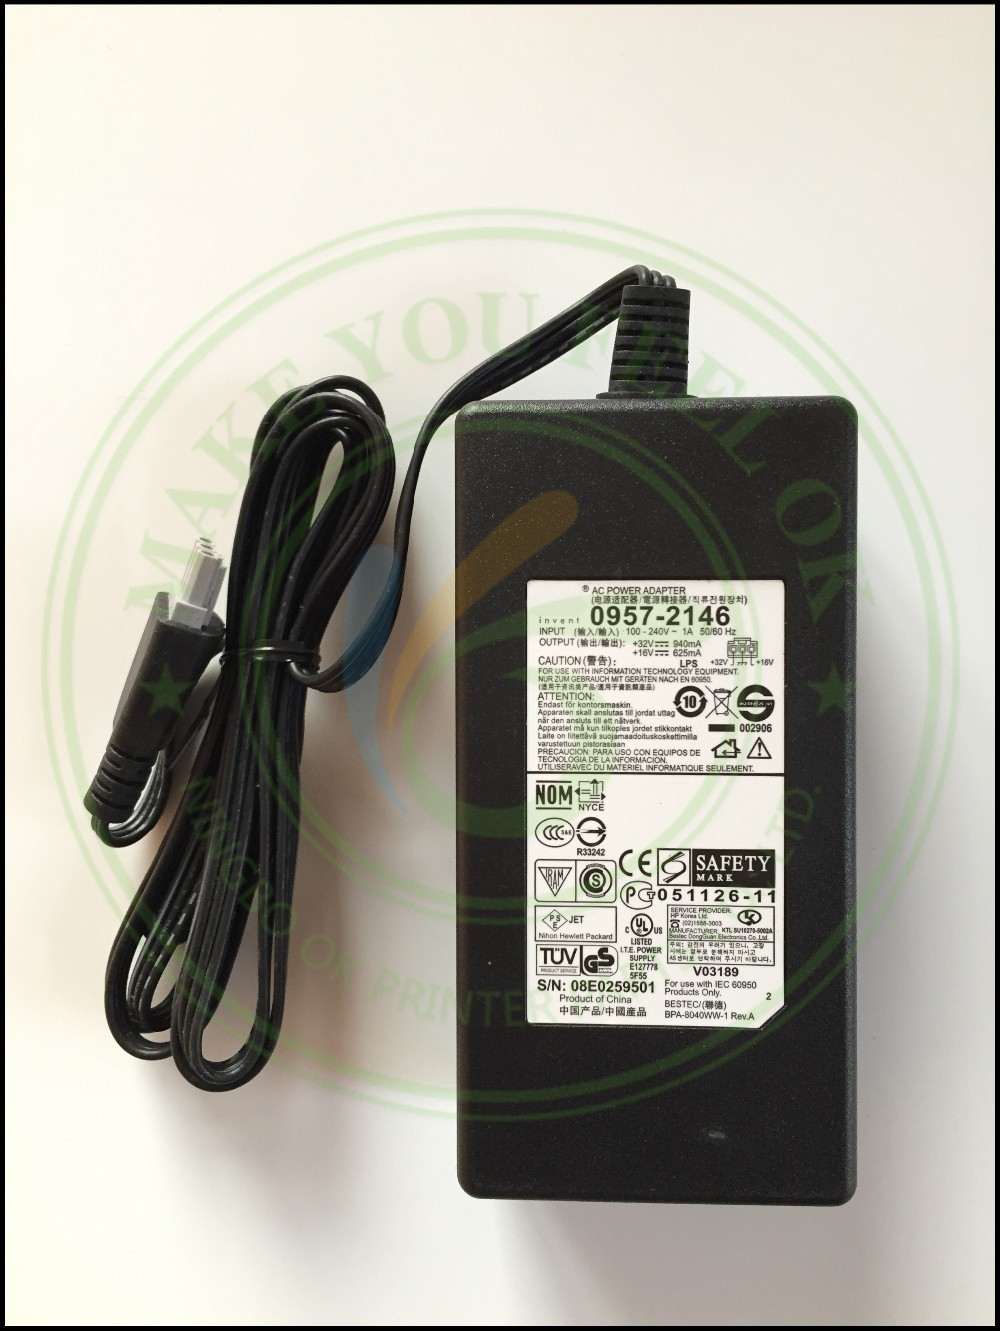 ORIGINAL NEW 0957-2178 0957-2146 0957-2166 AC Power Adapter Charger 100 - 240V 1A 50/60Hz 32V 940mA 16V 625mA for HP printer parts evk407i stm32 board stm32f407igt6 cortex m4 with usb hs fs ethernet nandflash jtag swd usb to uart with 3 2 320x240 touc